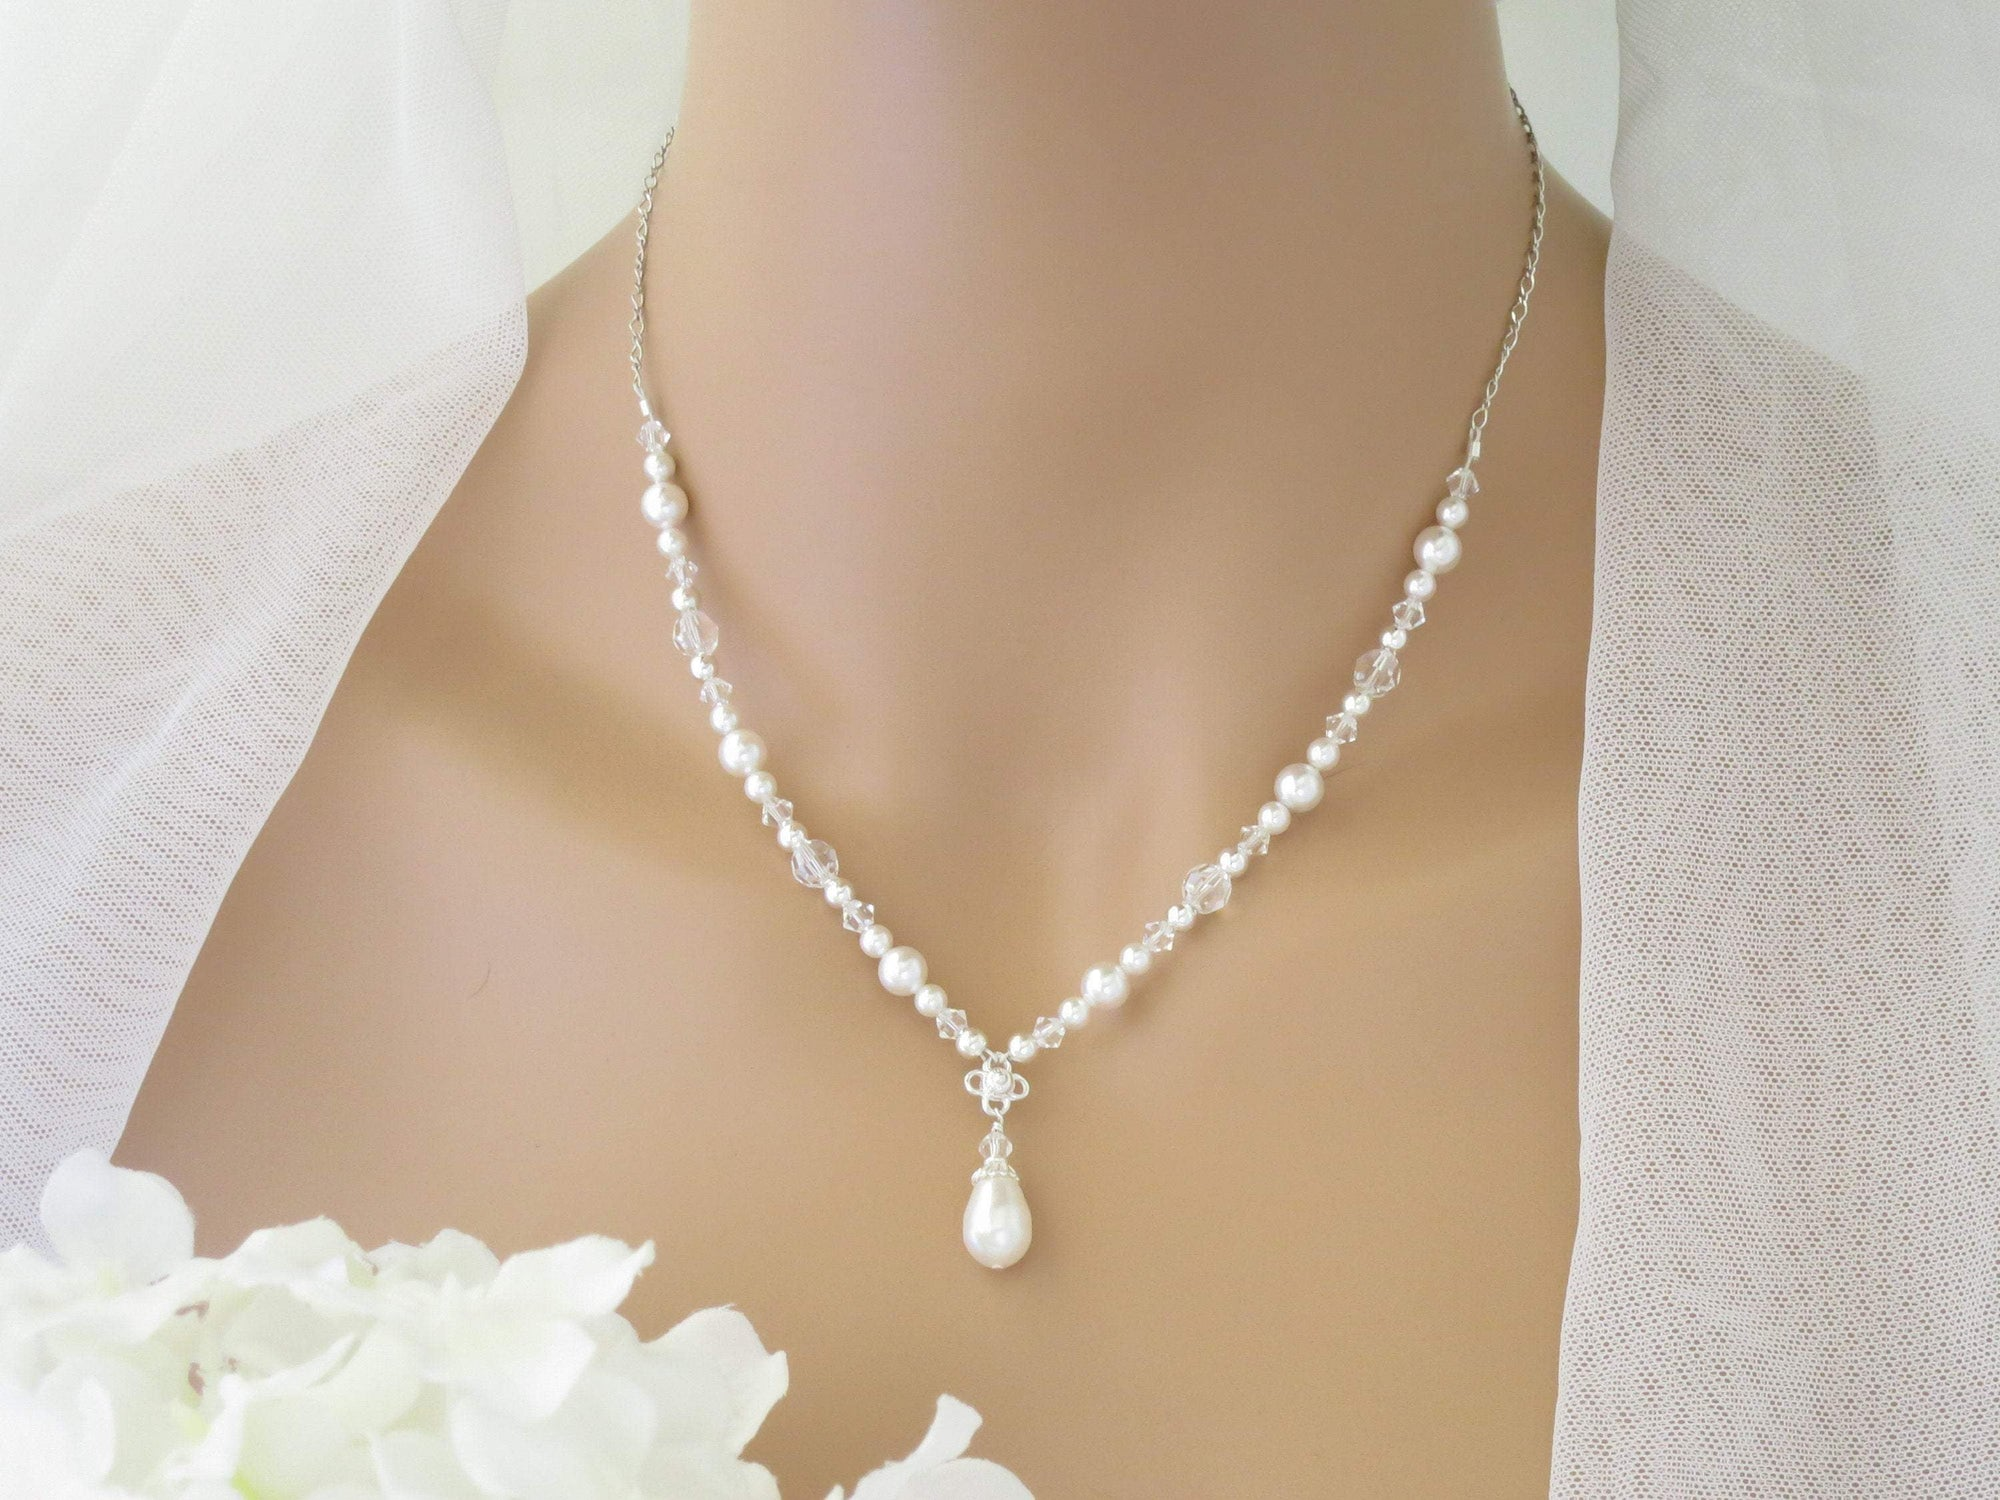 IVY:  Vintage Style Pearl Necklace - BlingBaddaBoom - Minimalist, Vintage, Modern Wedding and Bridal Jewelry